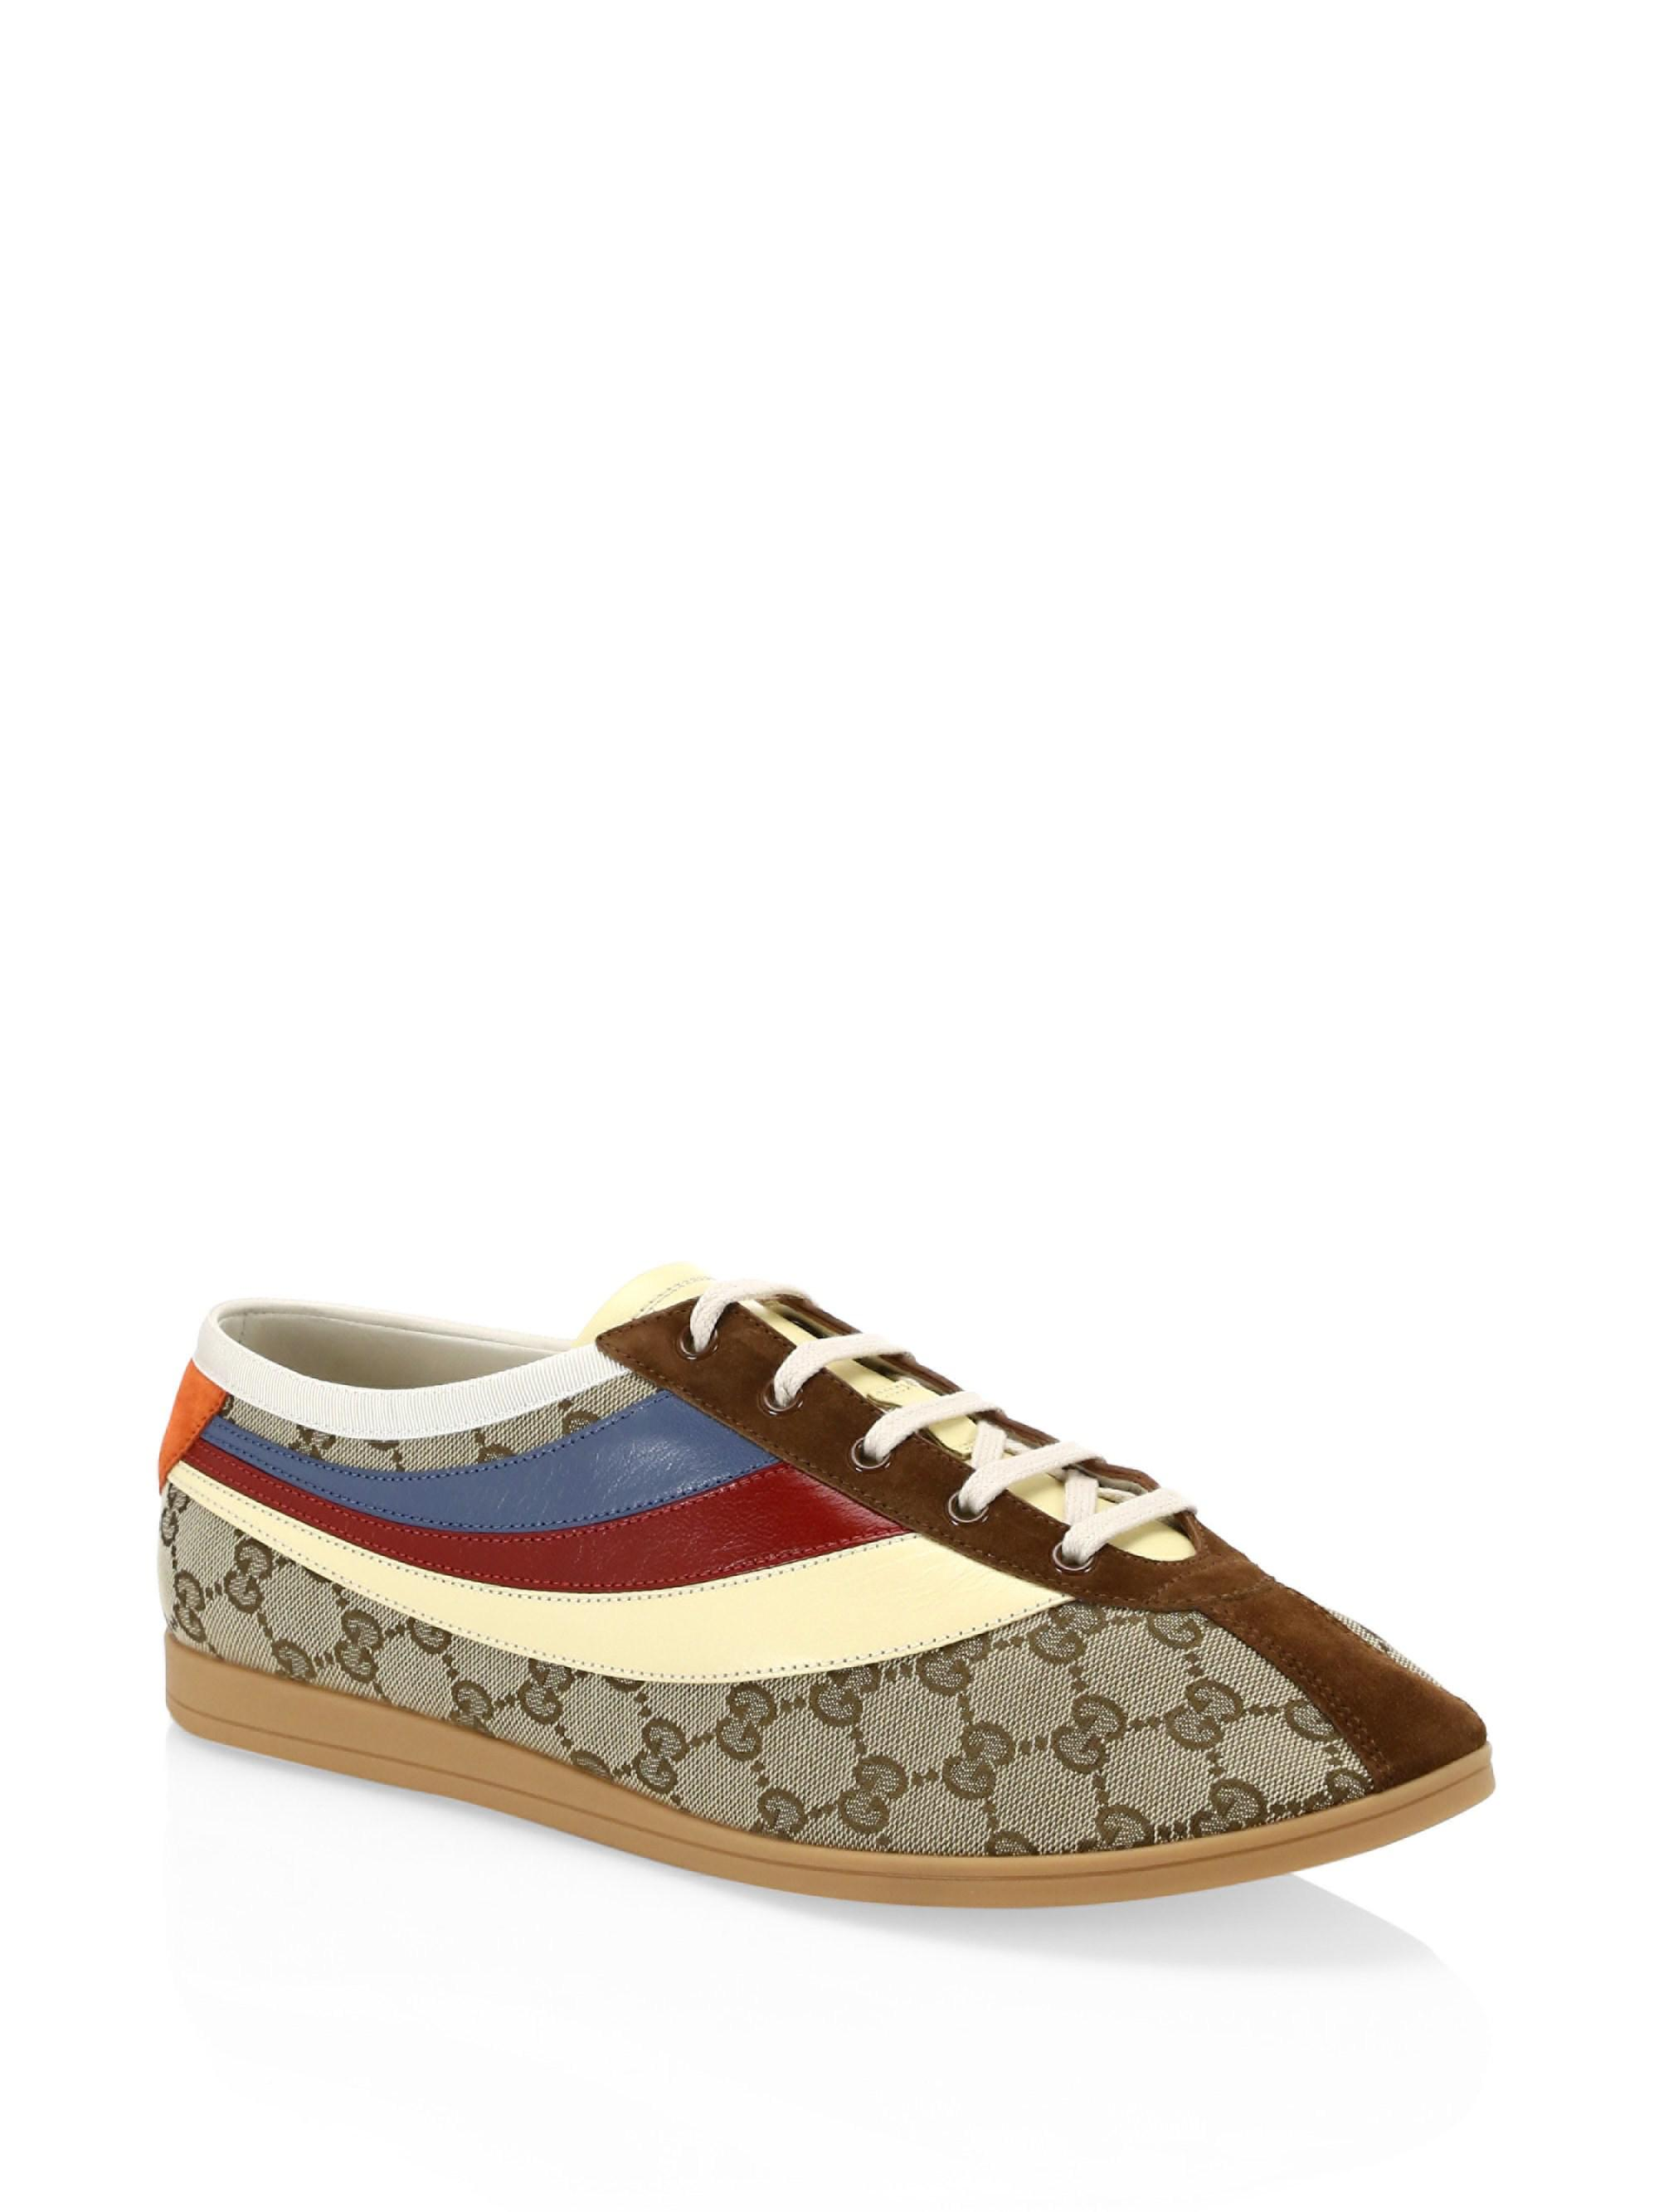 b7543edf260 Gucci. Men s Falacer GG Sneaker With Web - Brown - Size 7.5 Uk (8.5 Us).   910 From Saks Fifth Avenue